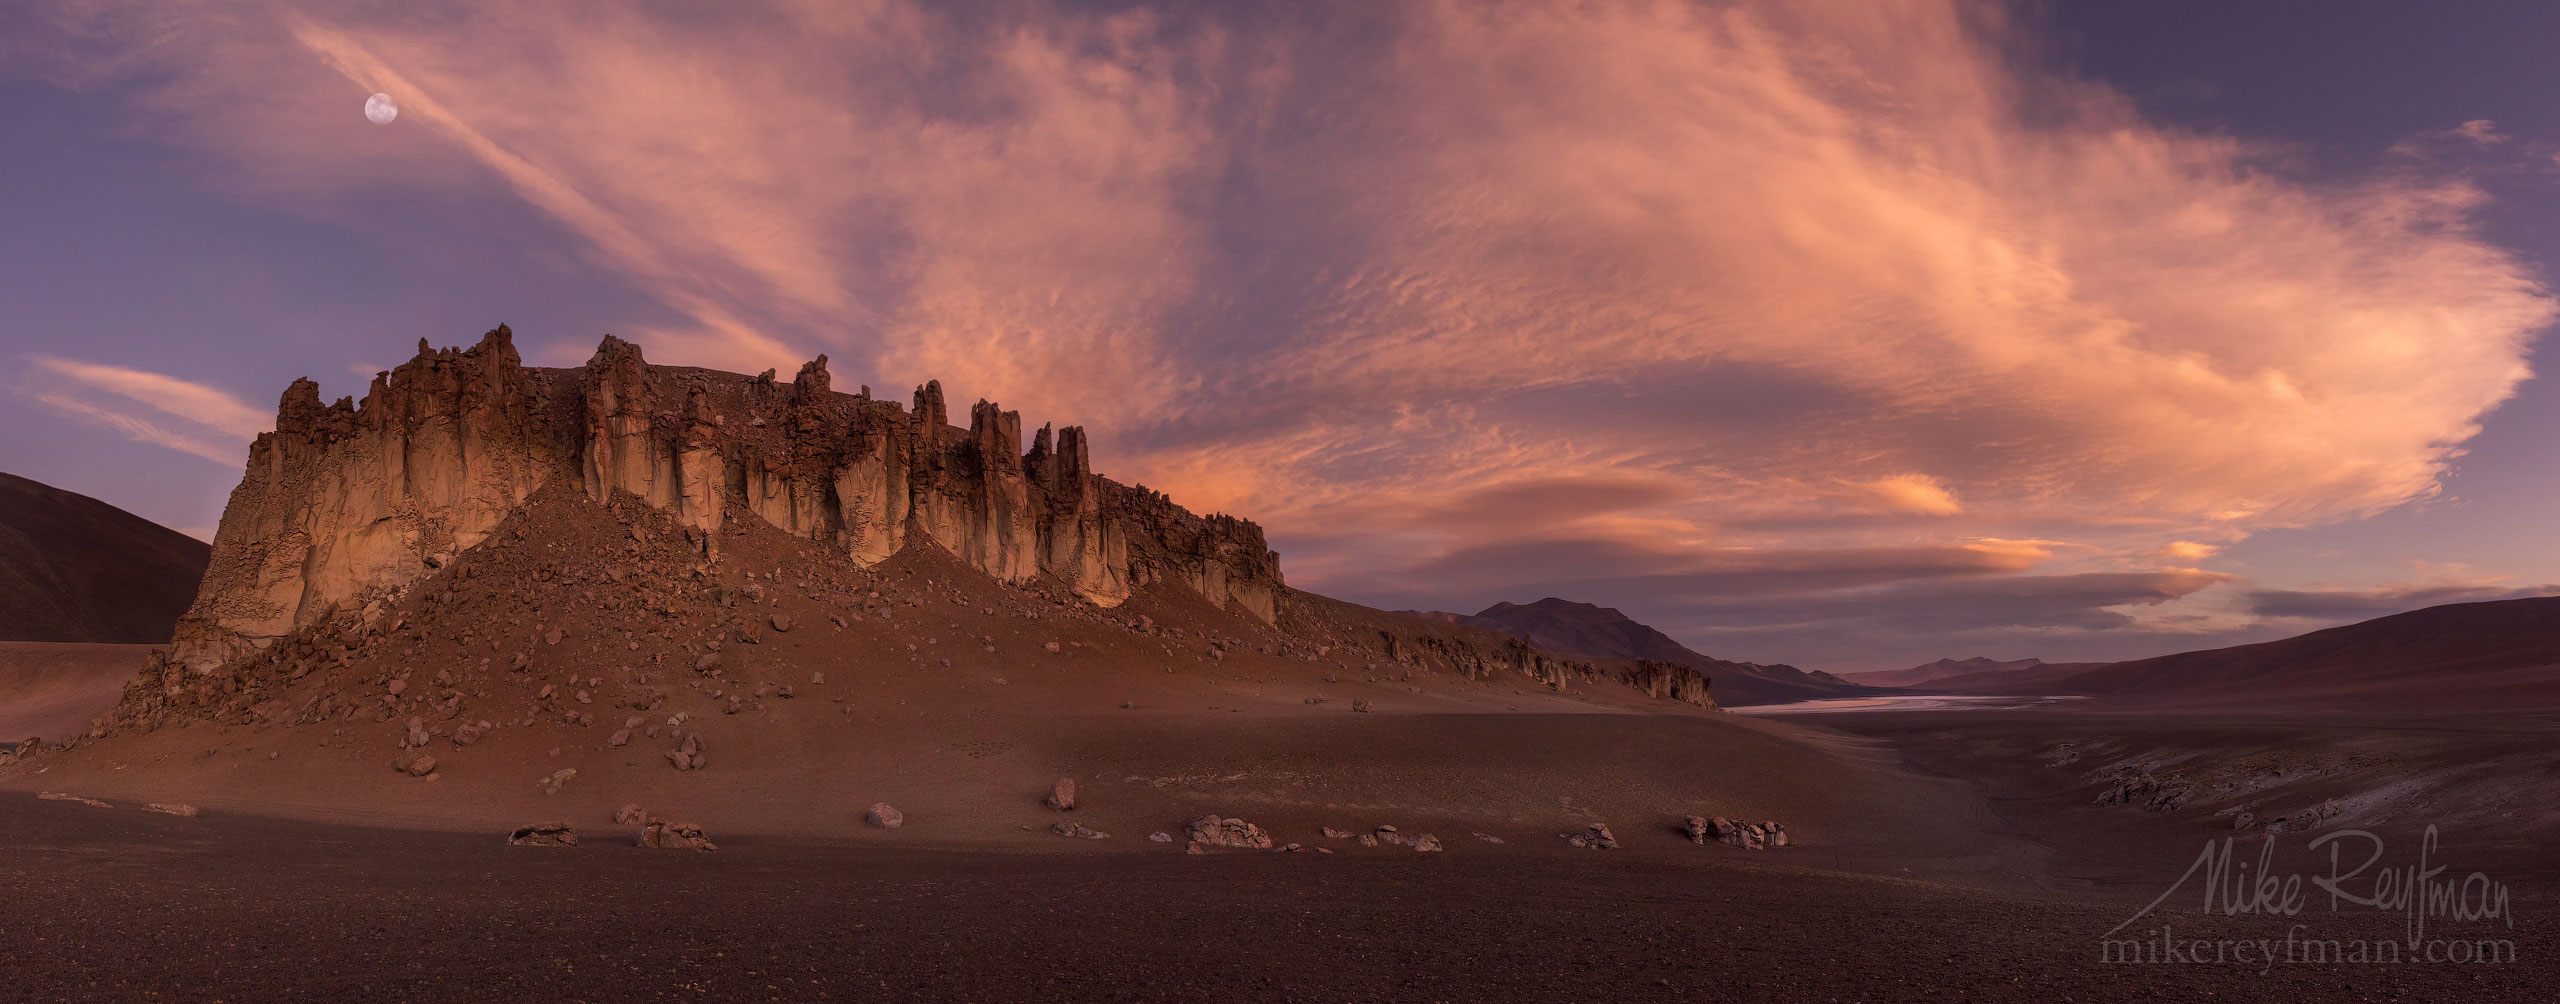 AA1-D1D8286_Pano_1x2.55 - Atacama and Altiplano. The Driest Desert and The High Plain - Mike Reyfman Photography